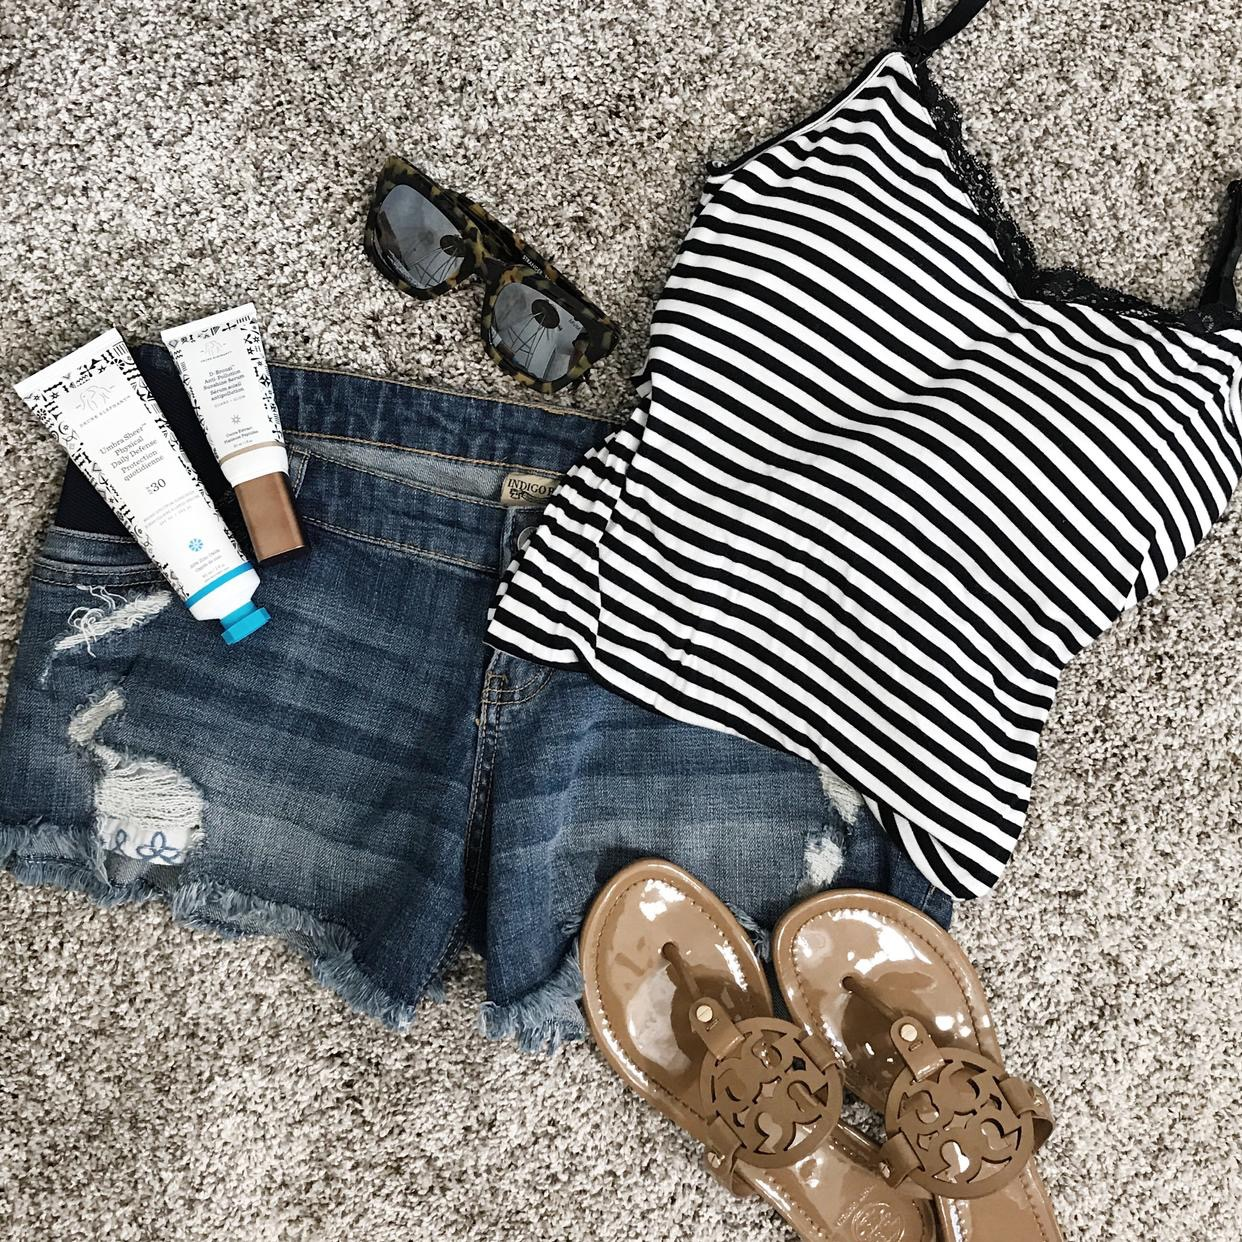 Brighter Darling Blog Go To Trendy Summer Maternity Outfit   Cute Maternity Striped Tank Top, Maternity Cut off Denim Shorts, Tory Burch Miller Sandals Nude Flip Flops